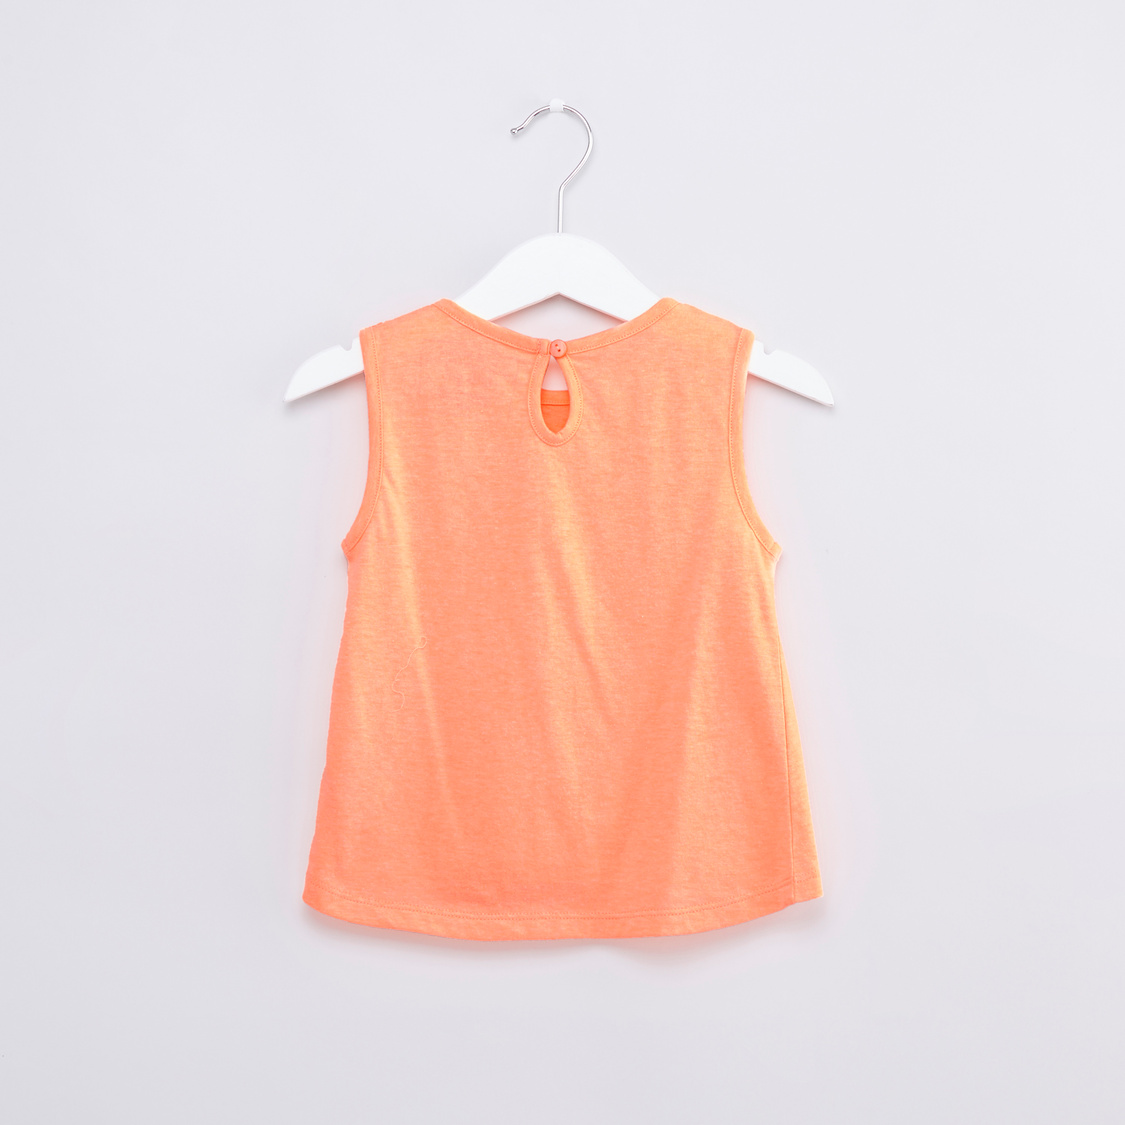 Bow Detail Sleeveless Top with Round Neck